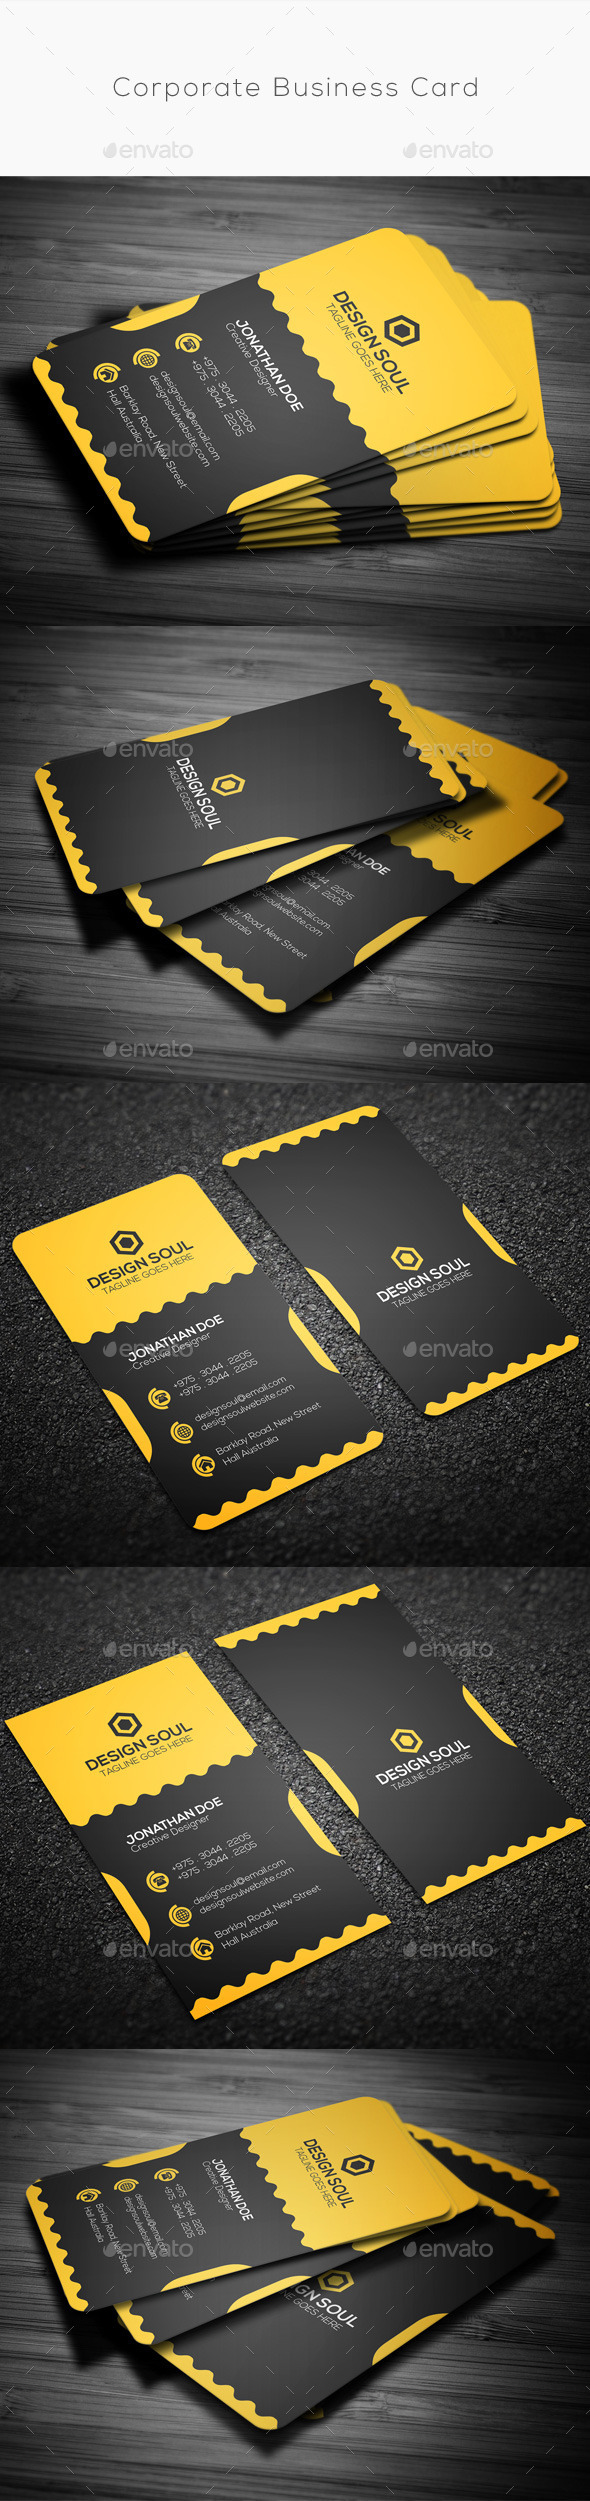 GraphicRiver Corporate Business Card 9859381